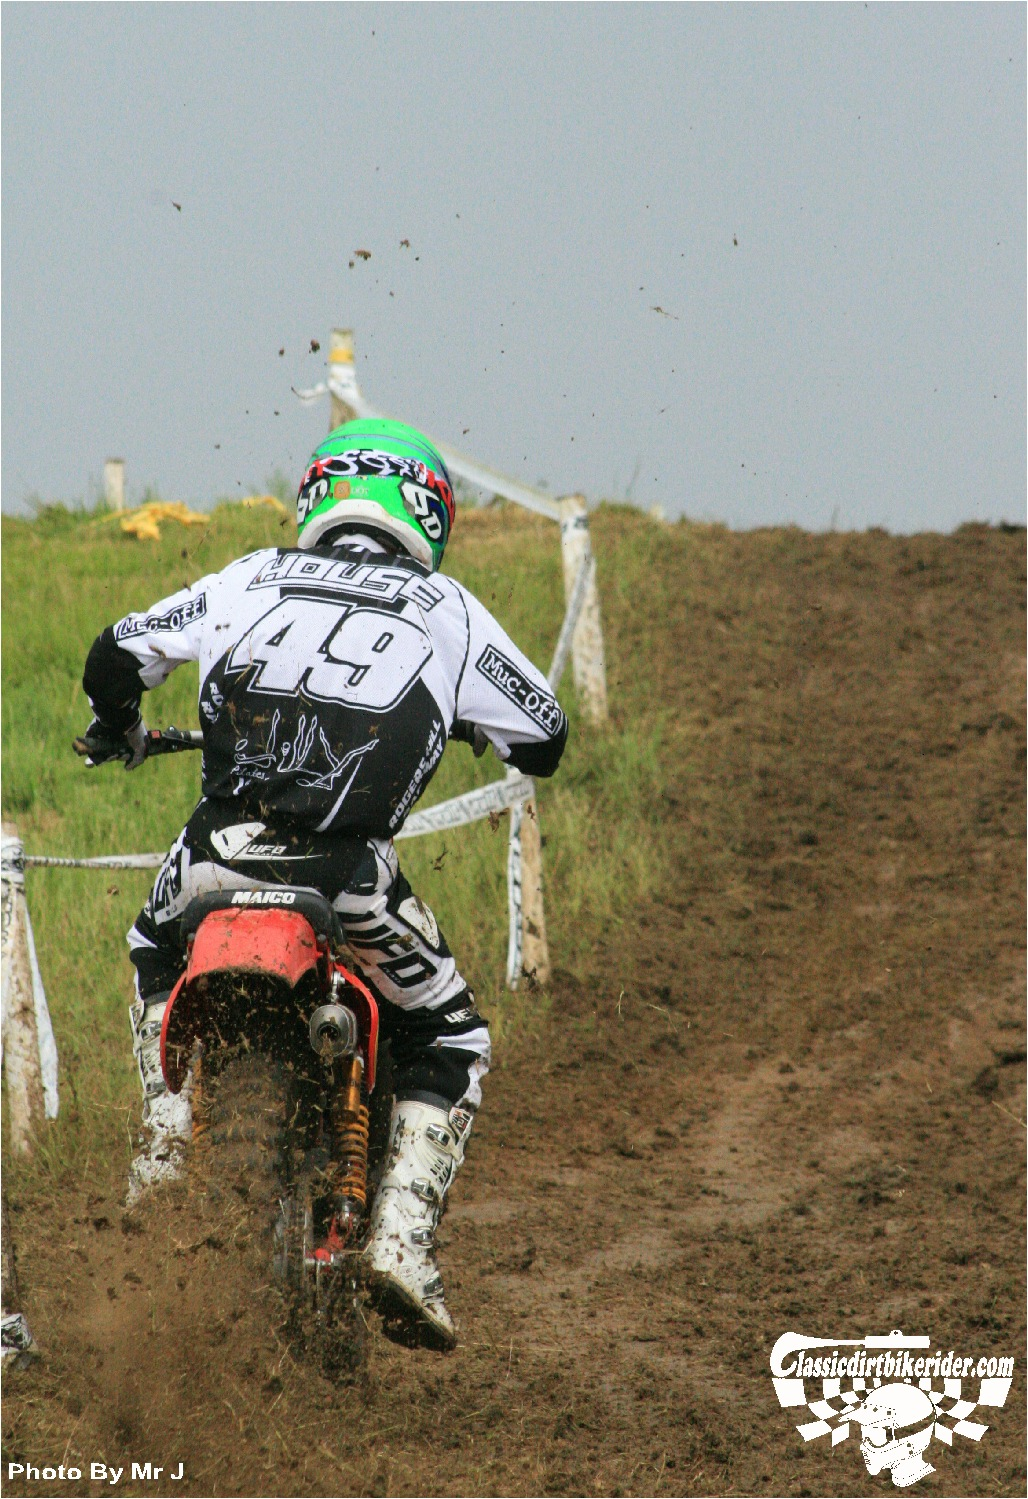 king of the castle 2015 photos Farleigh Castle twinshock motocross classicdirtbikerider.com 124